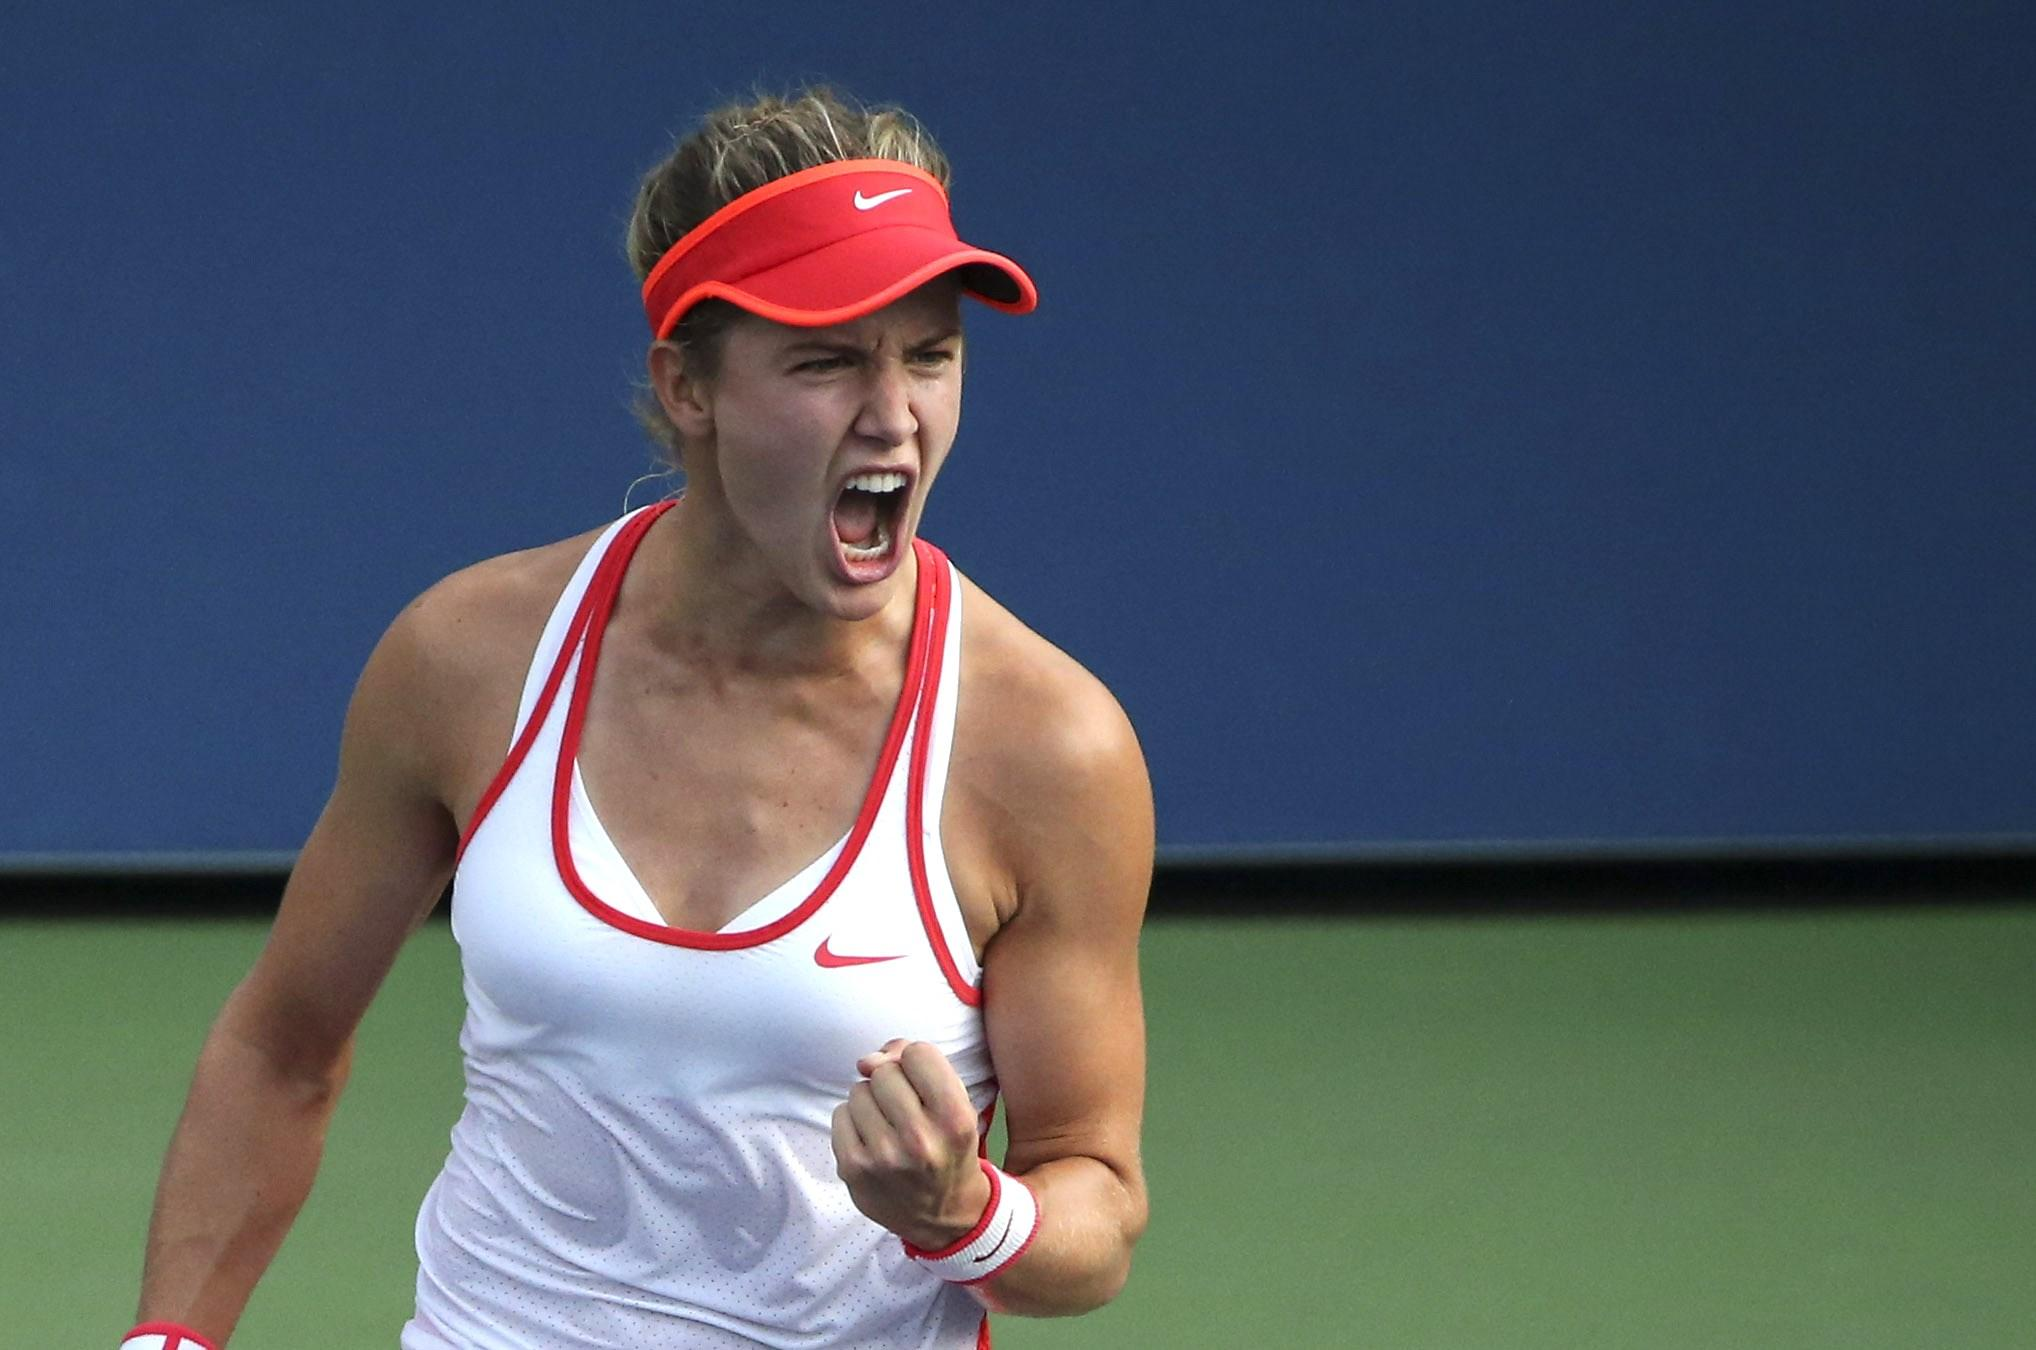 Bouchard plans to play in the Grand Slams this summer including the French Open and Wimbledon